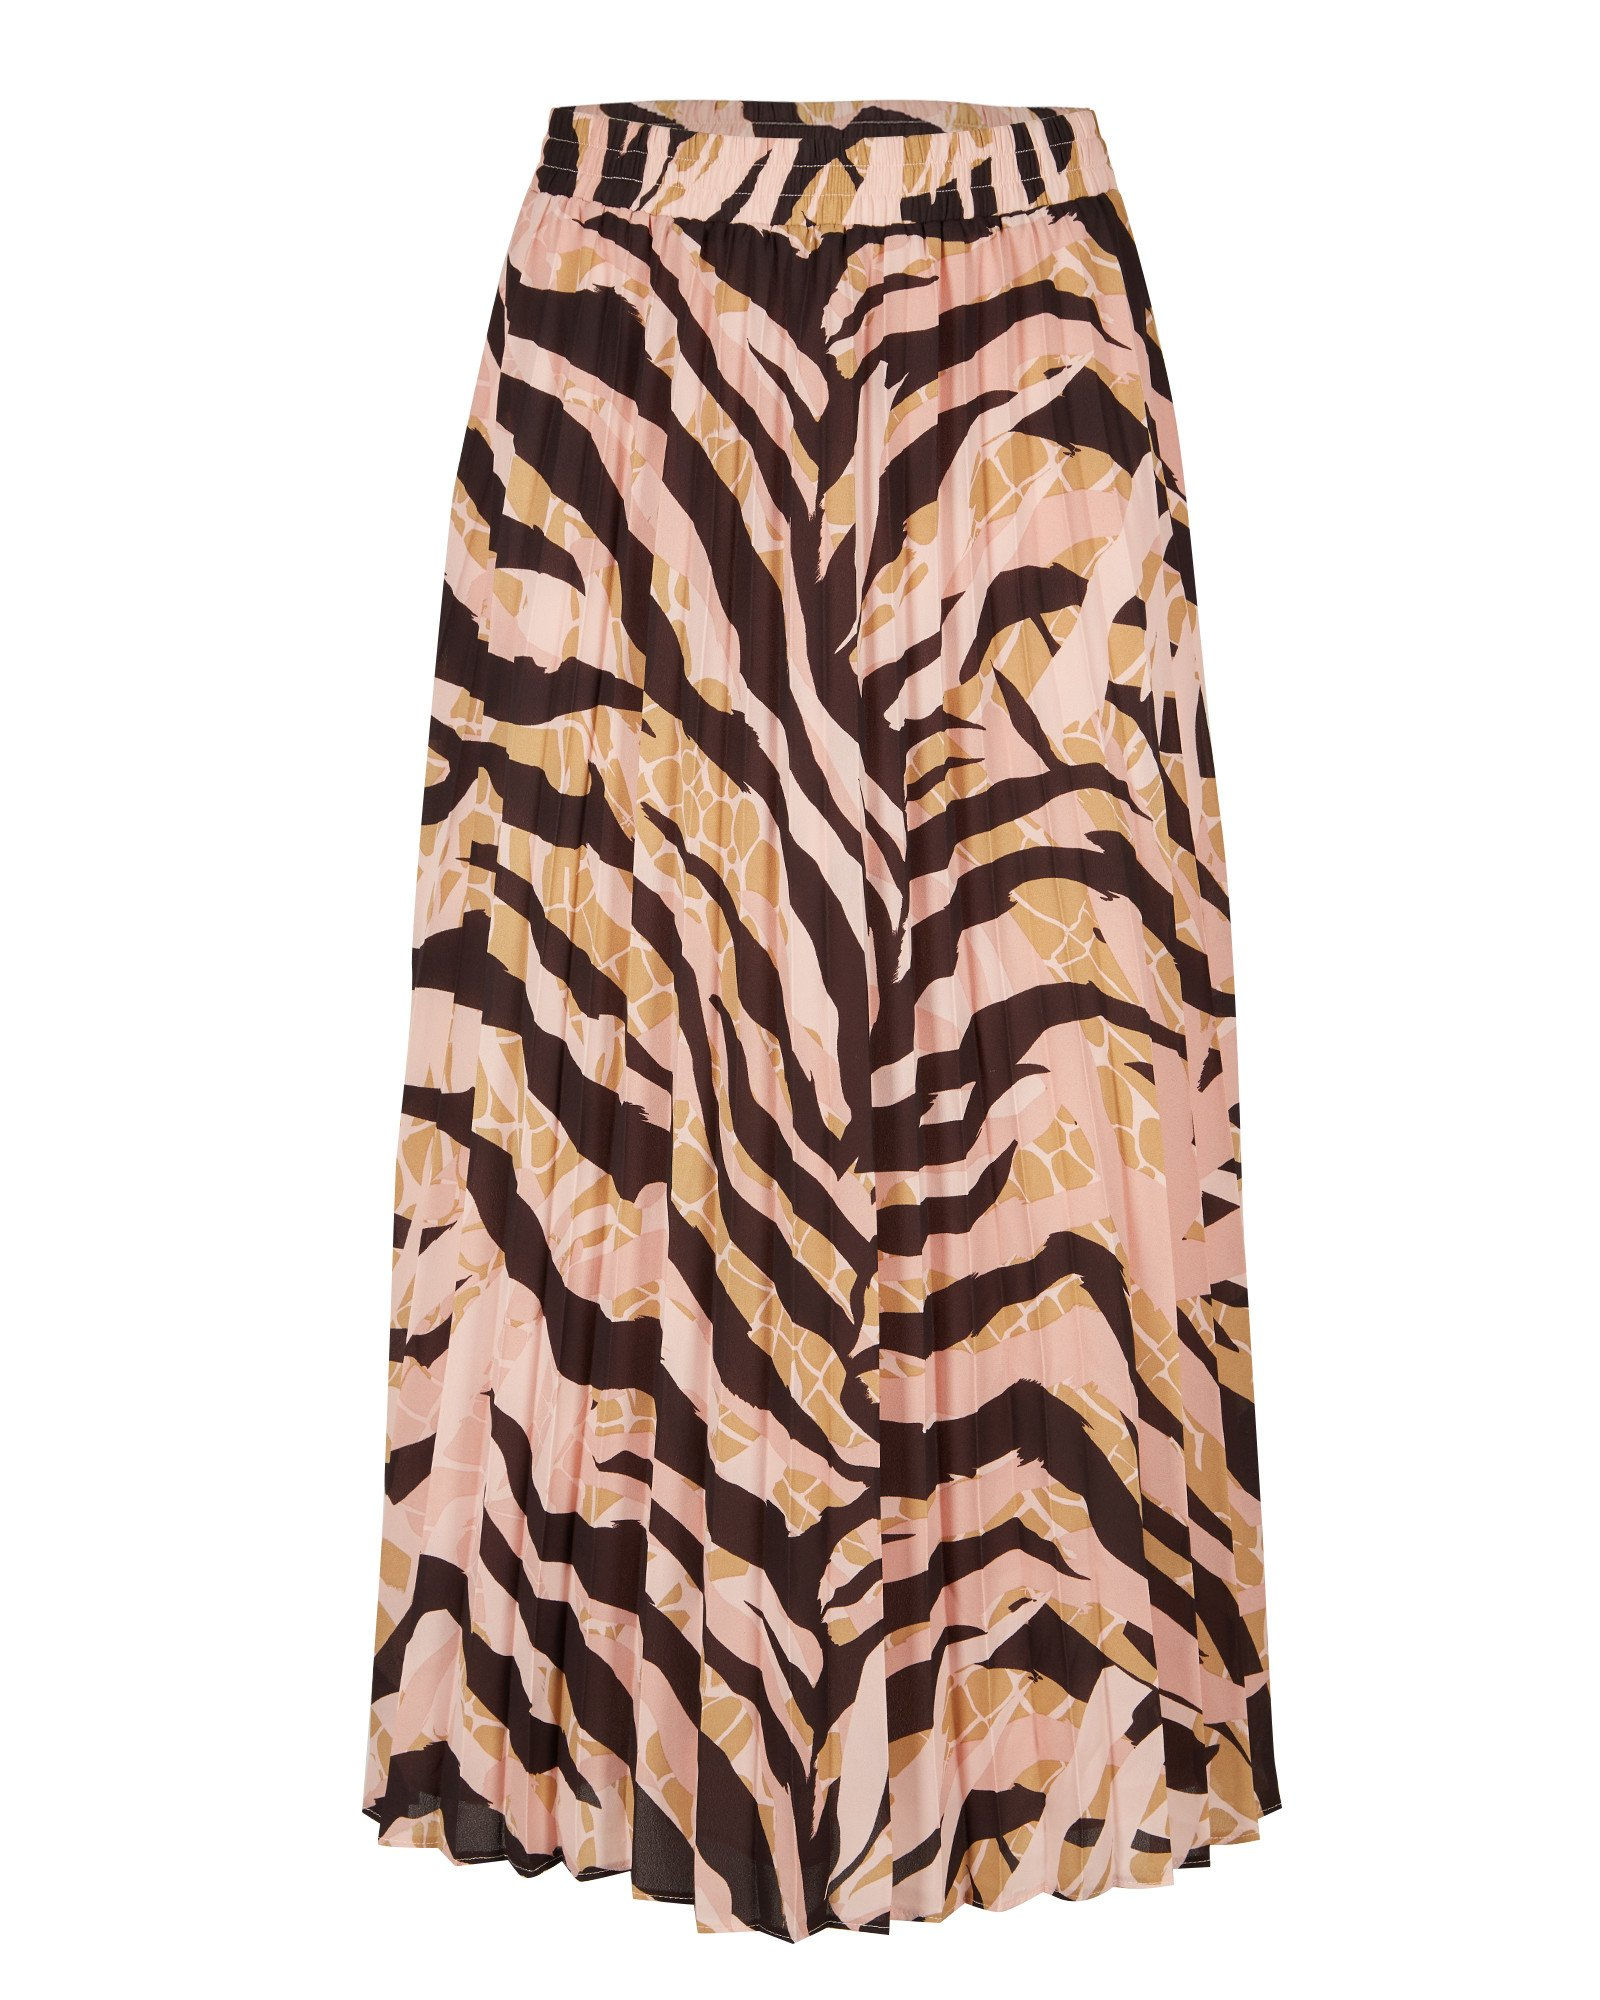 Earths Texture Zebra Print Pleated Midi Skirt